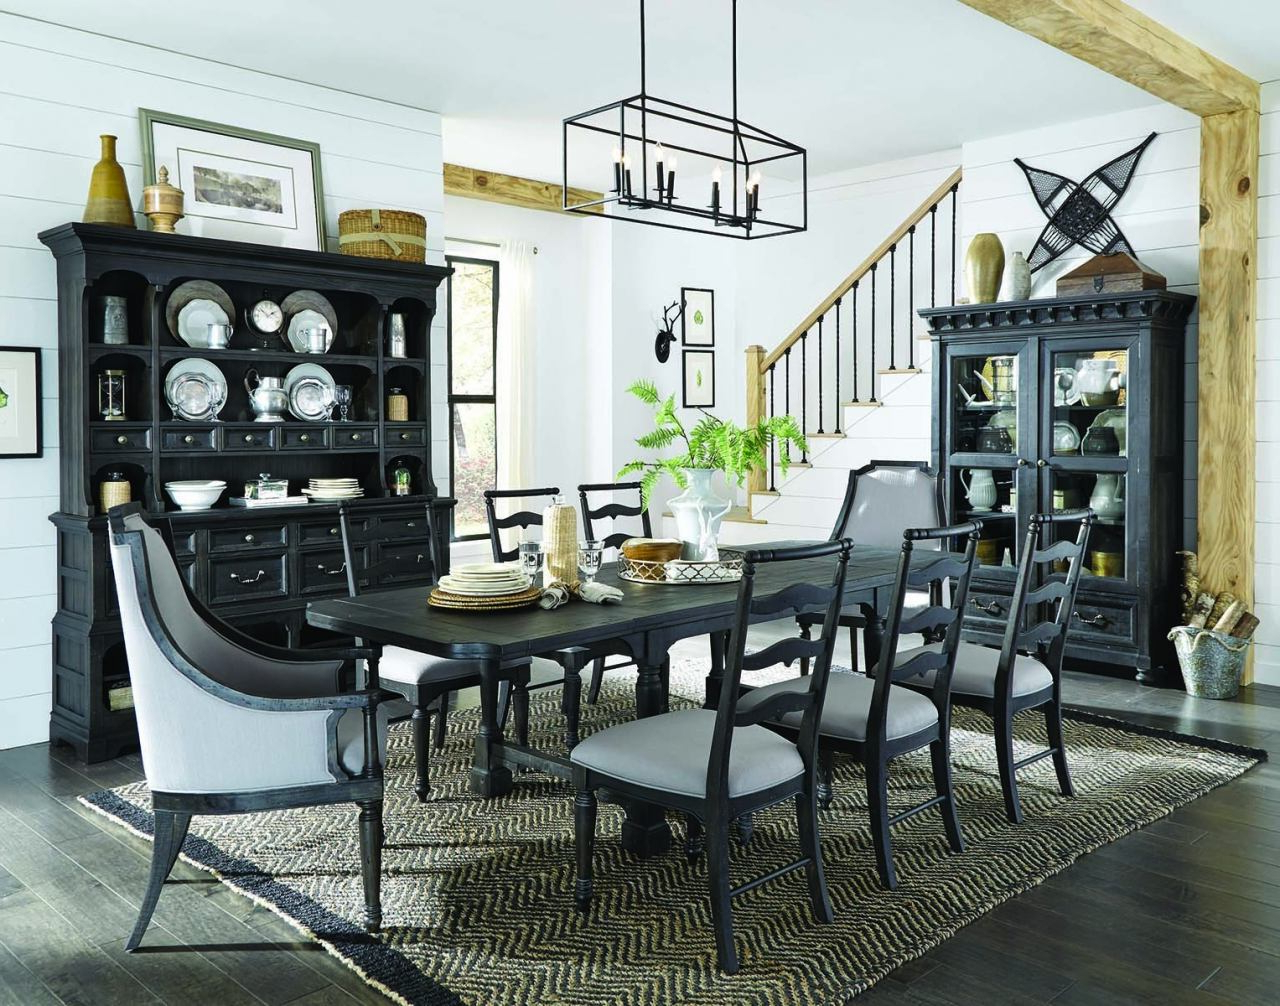 2017 Bedfo 3 Piece Dining Sets With Regard To Magnussen Furniture Bedford Corners 7Pc Rectangular Dining Set In Anvil  Black (Gallery 5 of 20)